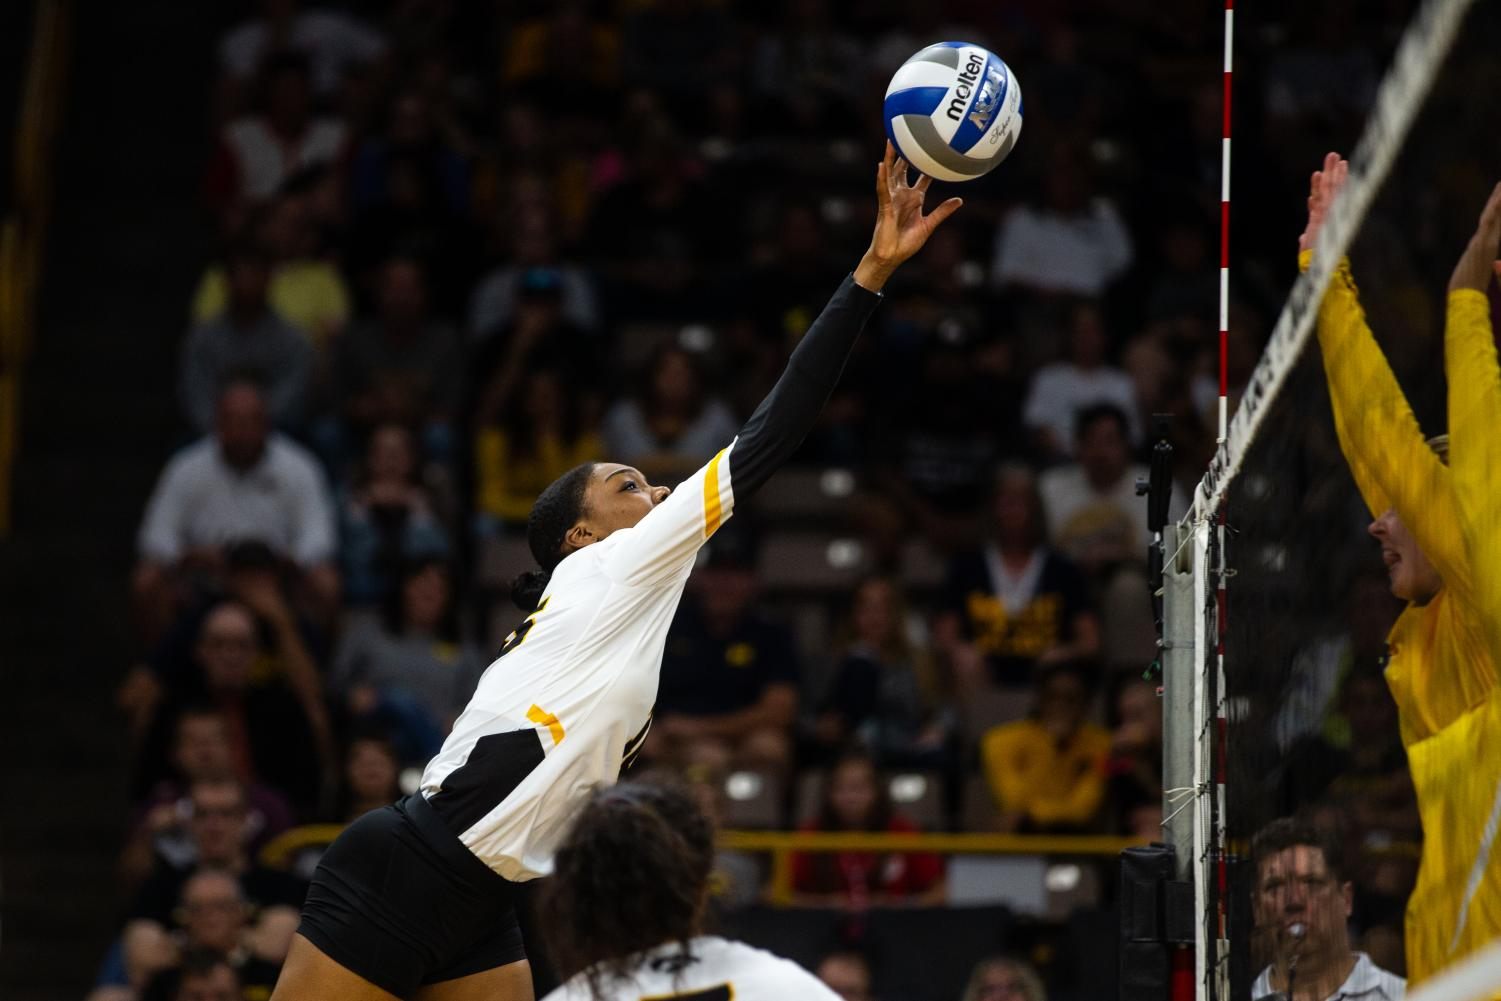 Taylor Louis tips the ball over the net during Iowa's match against Michigan at Carver-Hawkeye Arena on September 23, 2018. The Hawkeyes were defeated 3-1. (Megan Nagorzanski/The Daily Iowan)